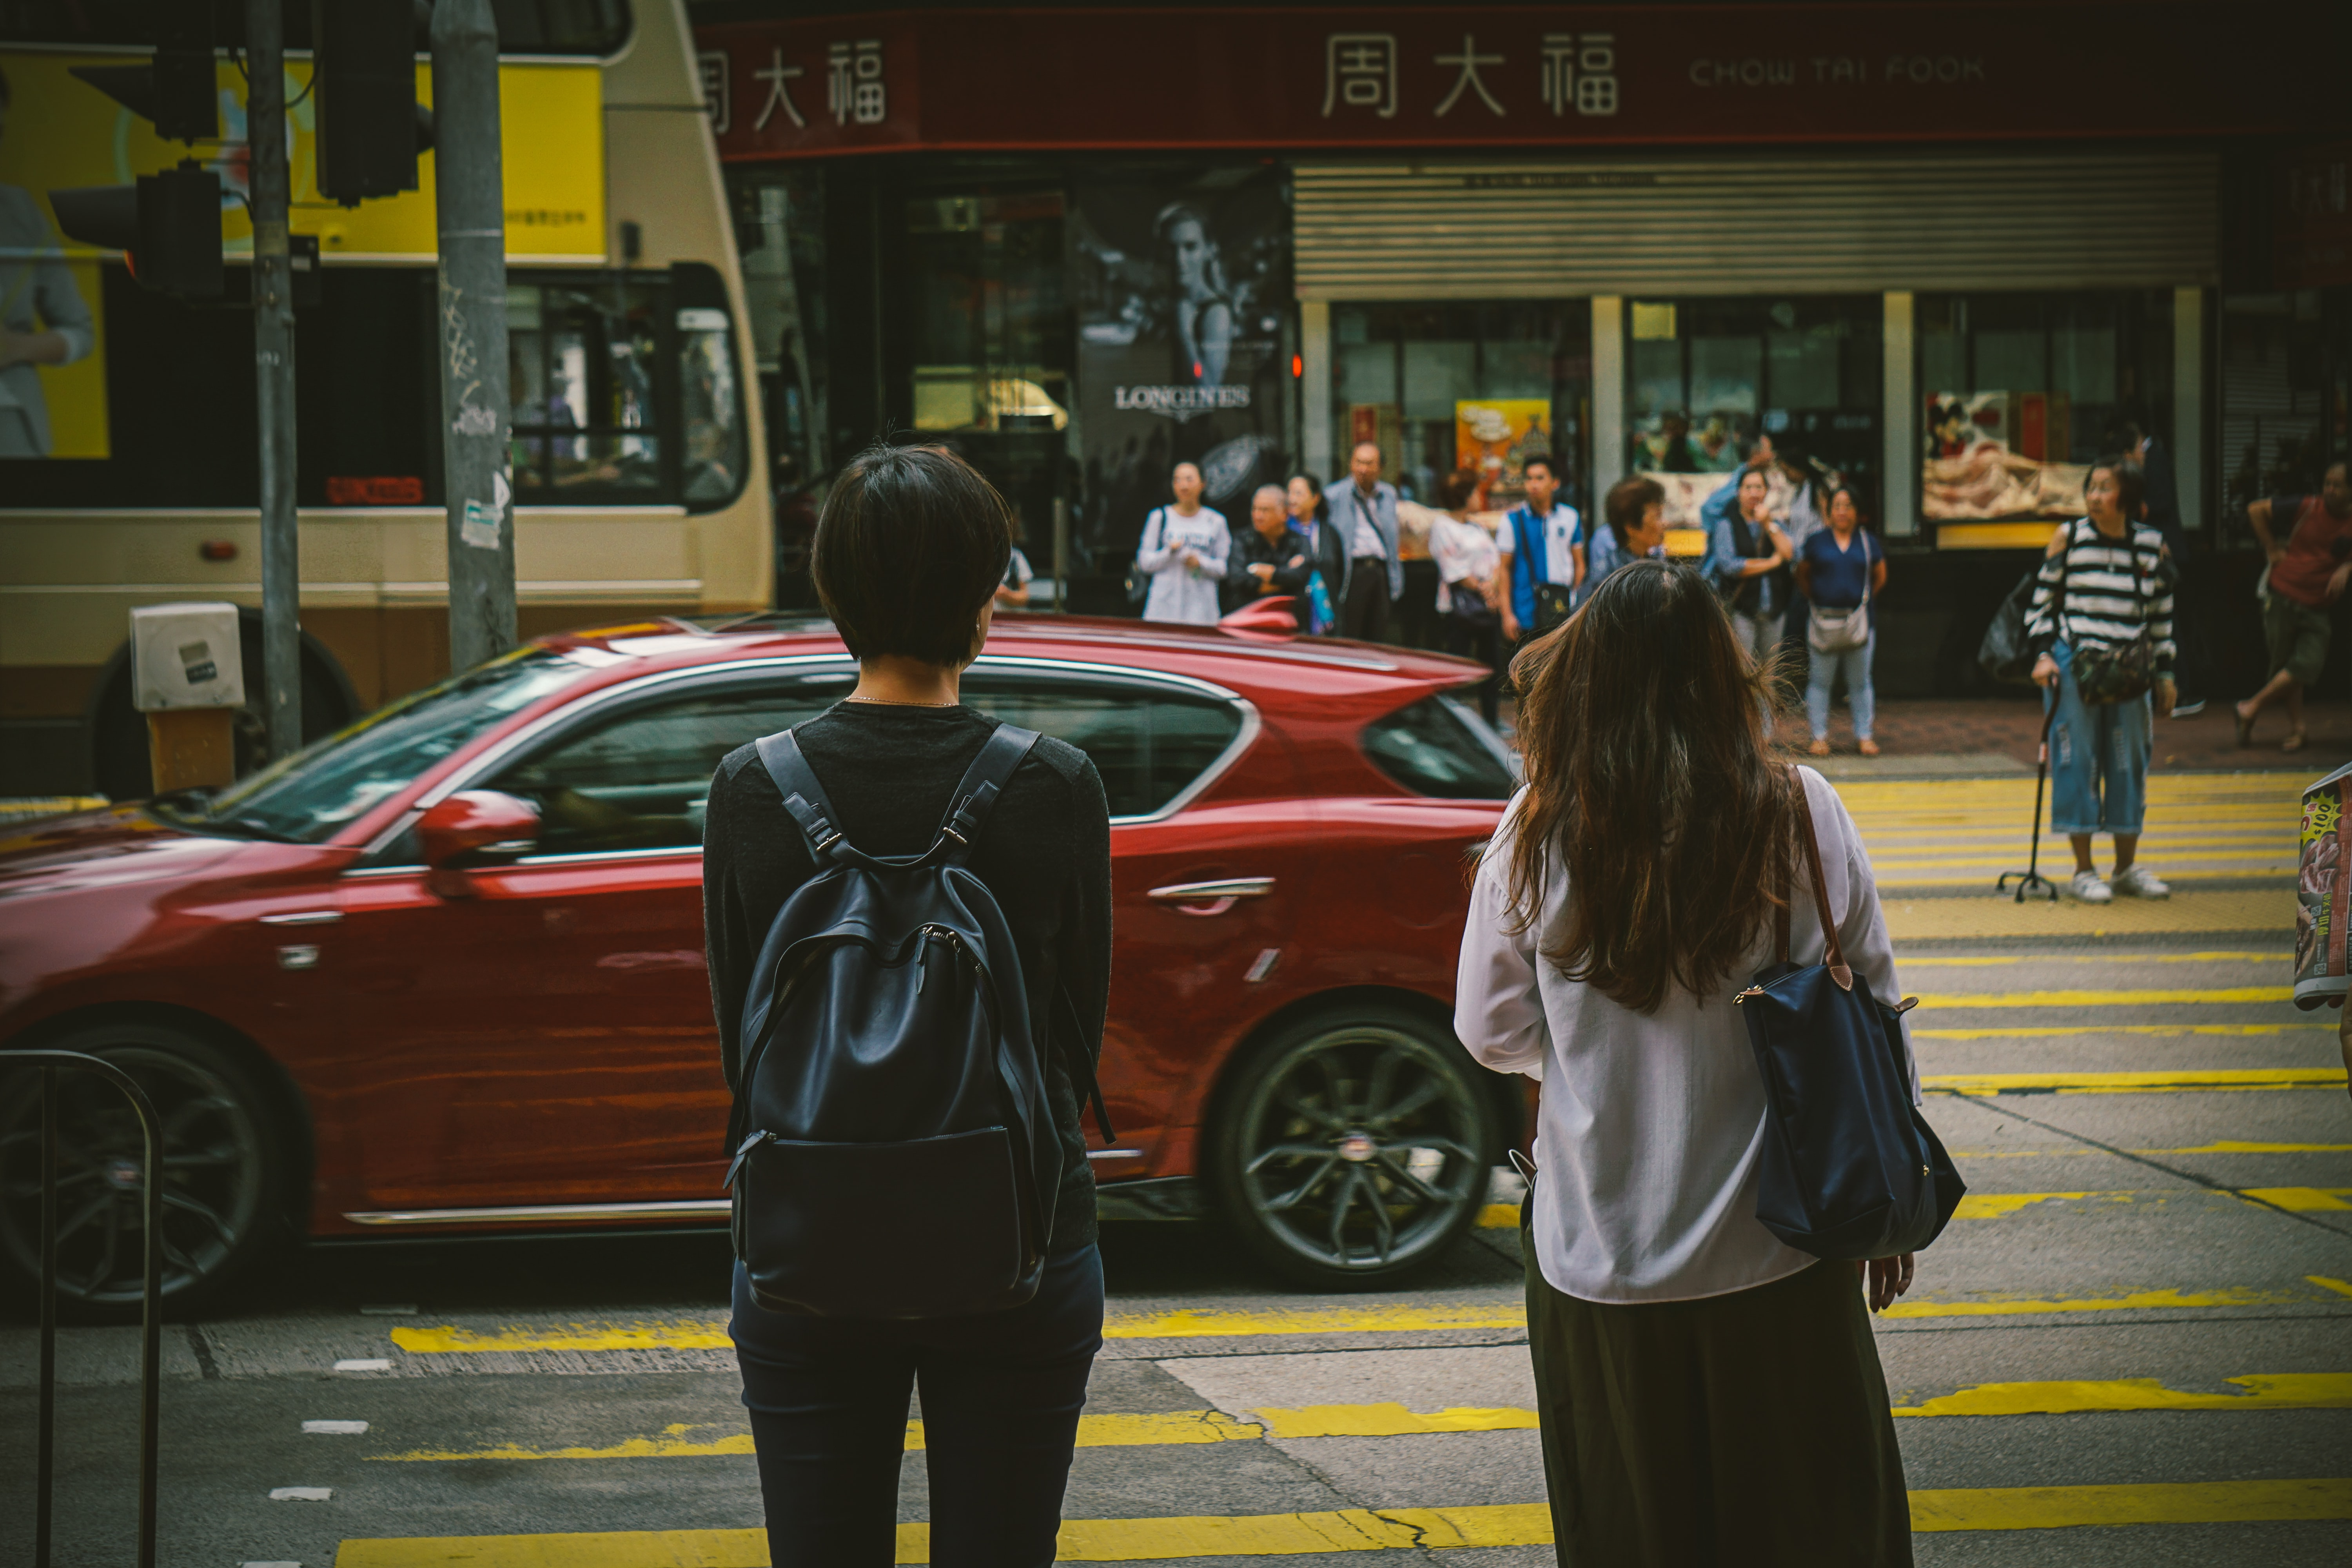 man and woman standing near red car